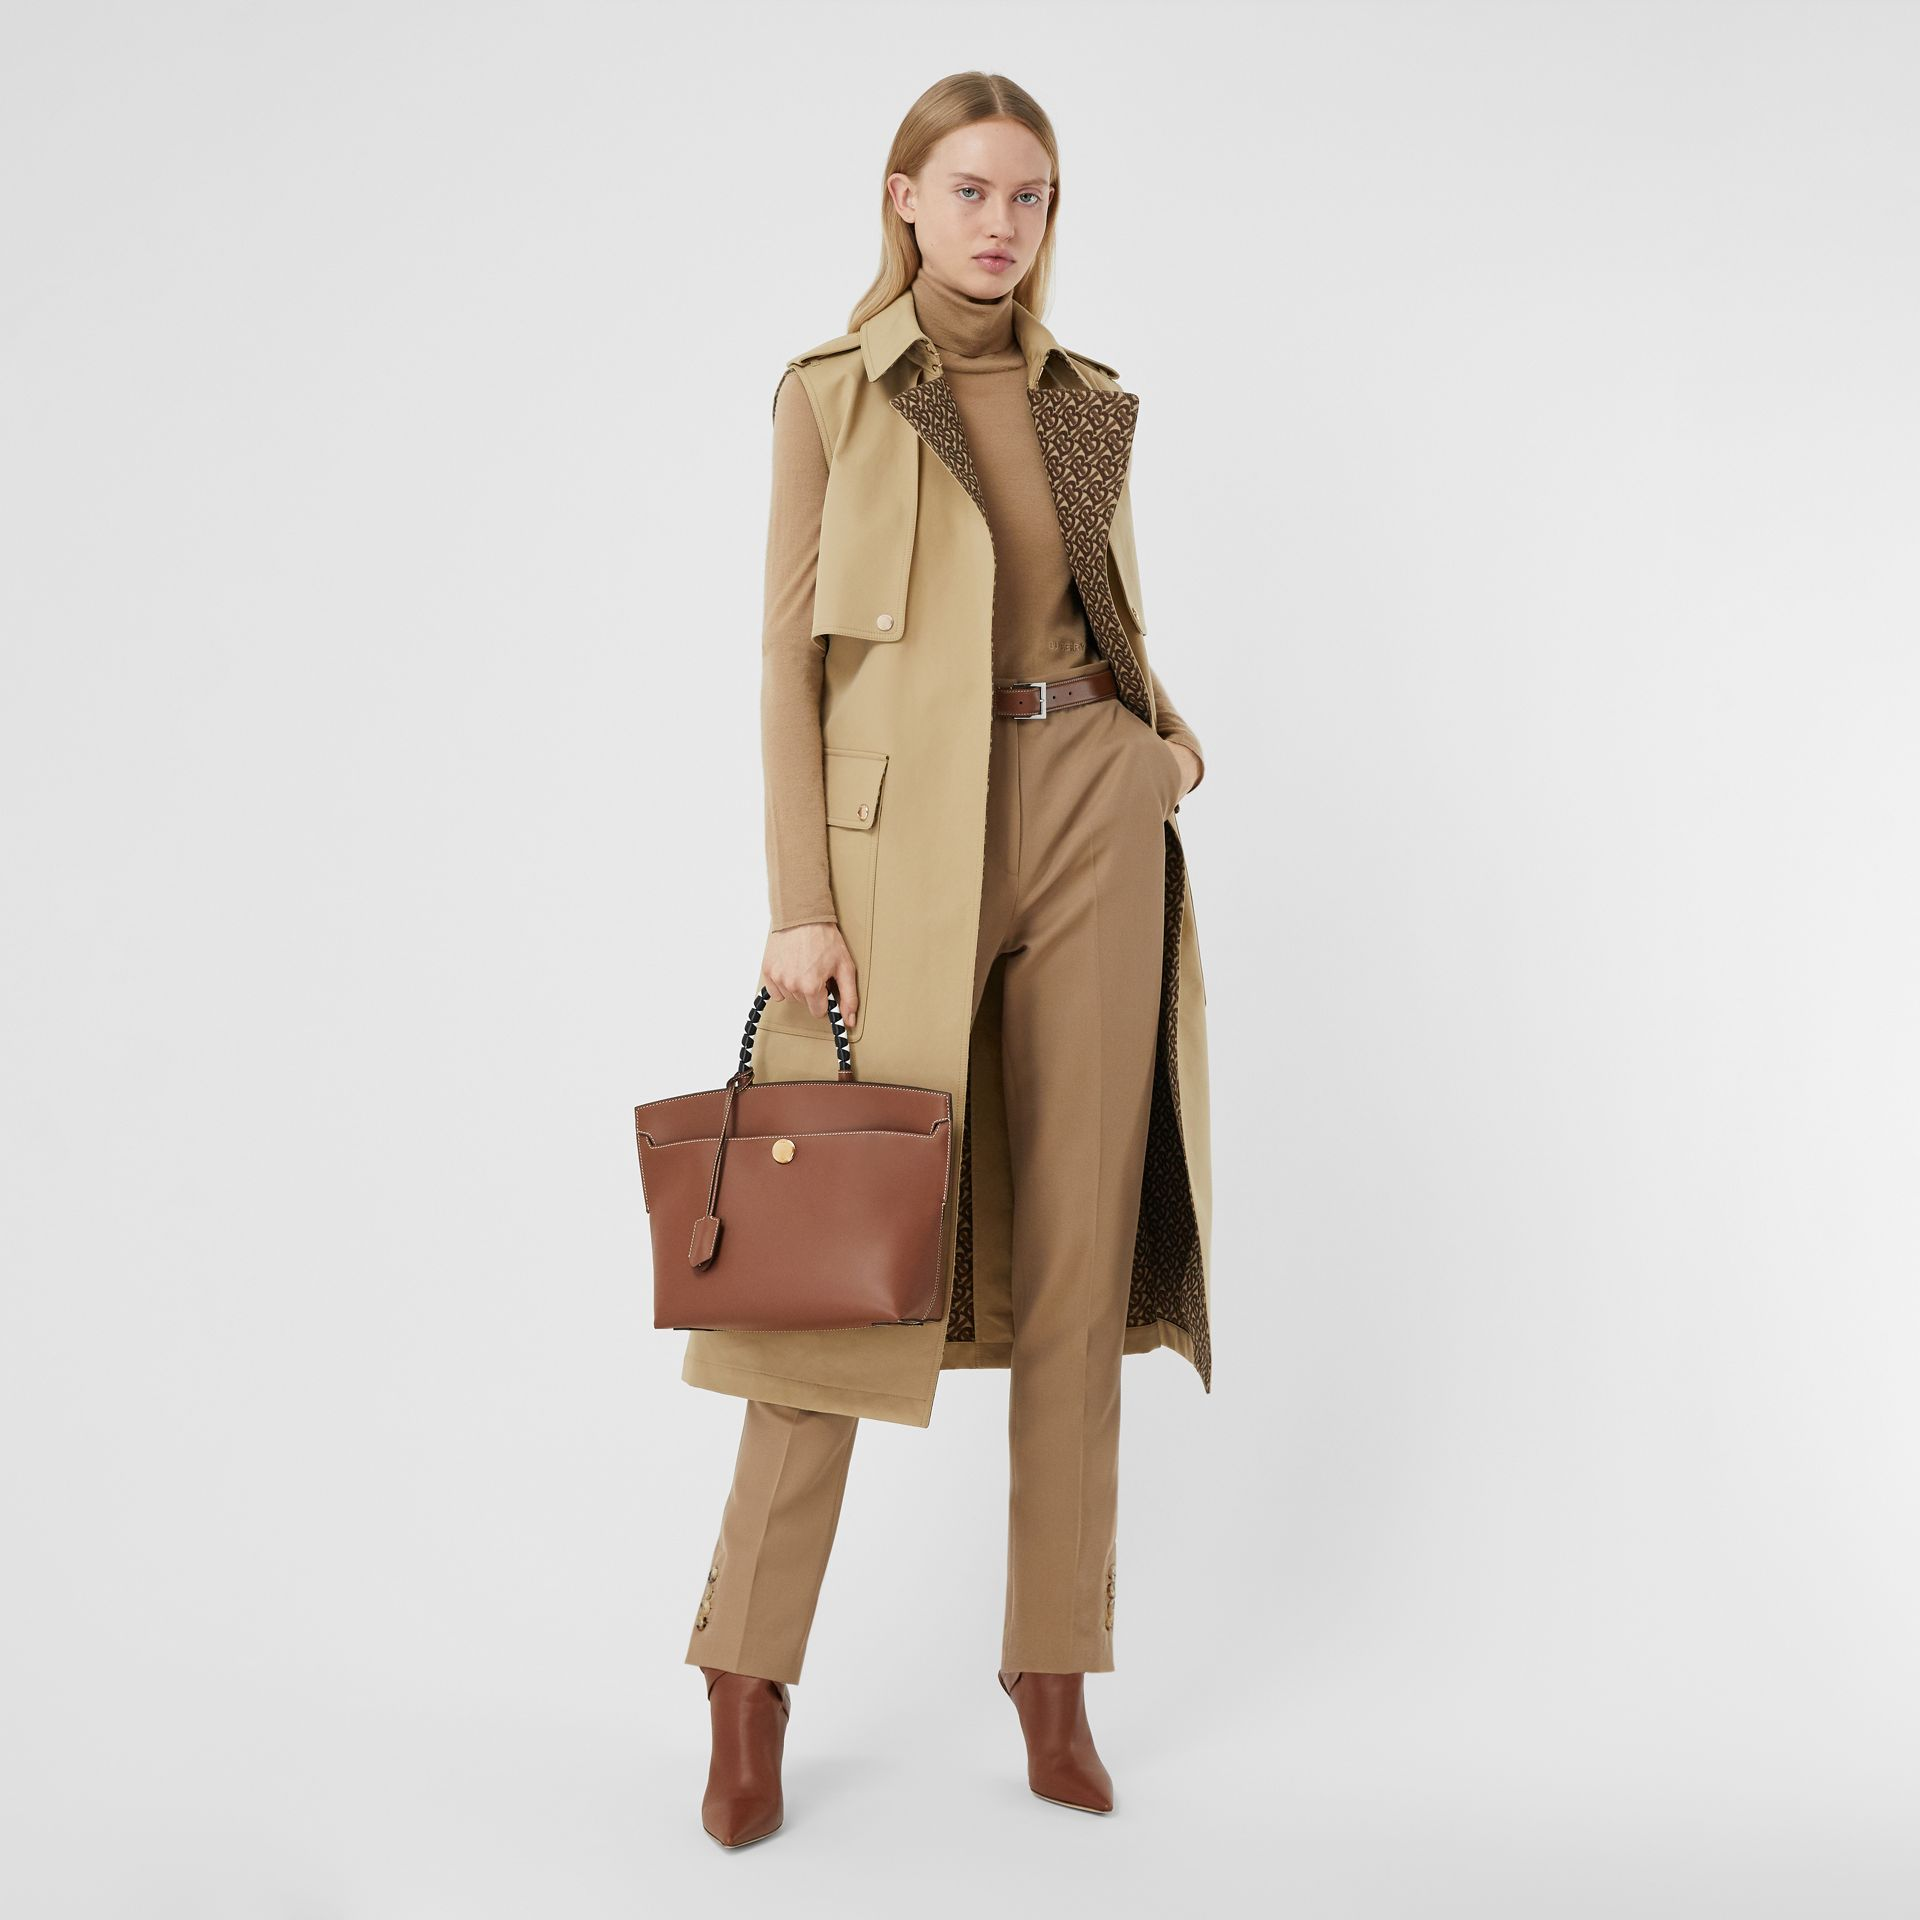 Small Leather Society Top Handle Bag in Tan - Women | Burberry - gallery image 5